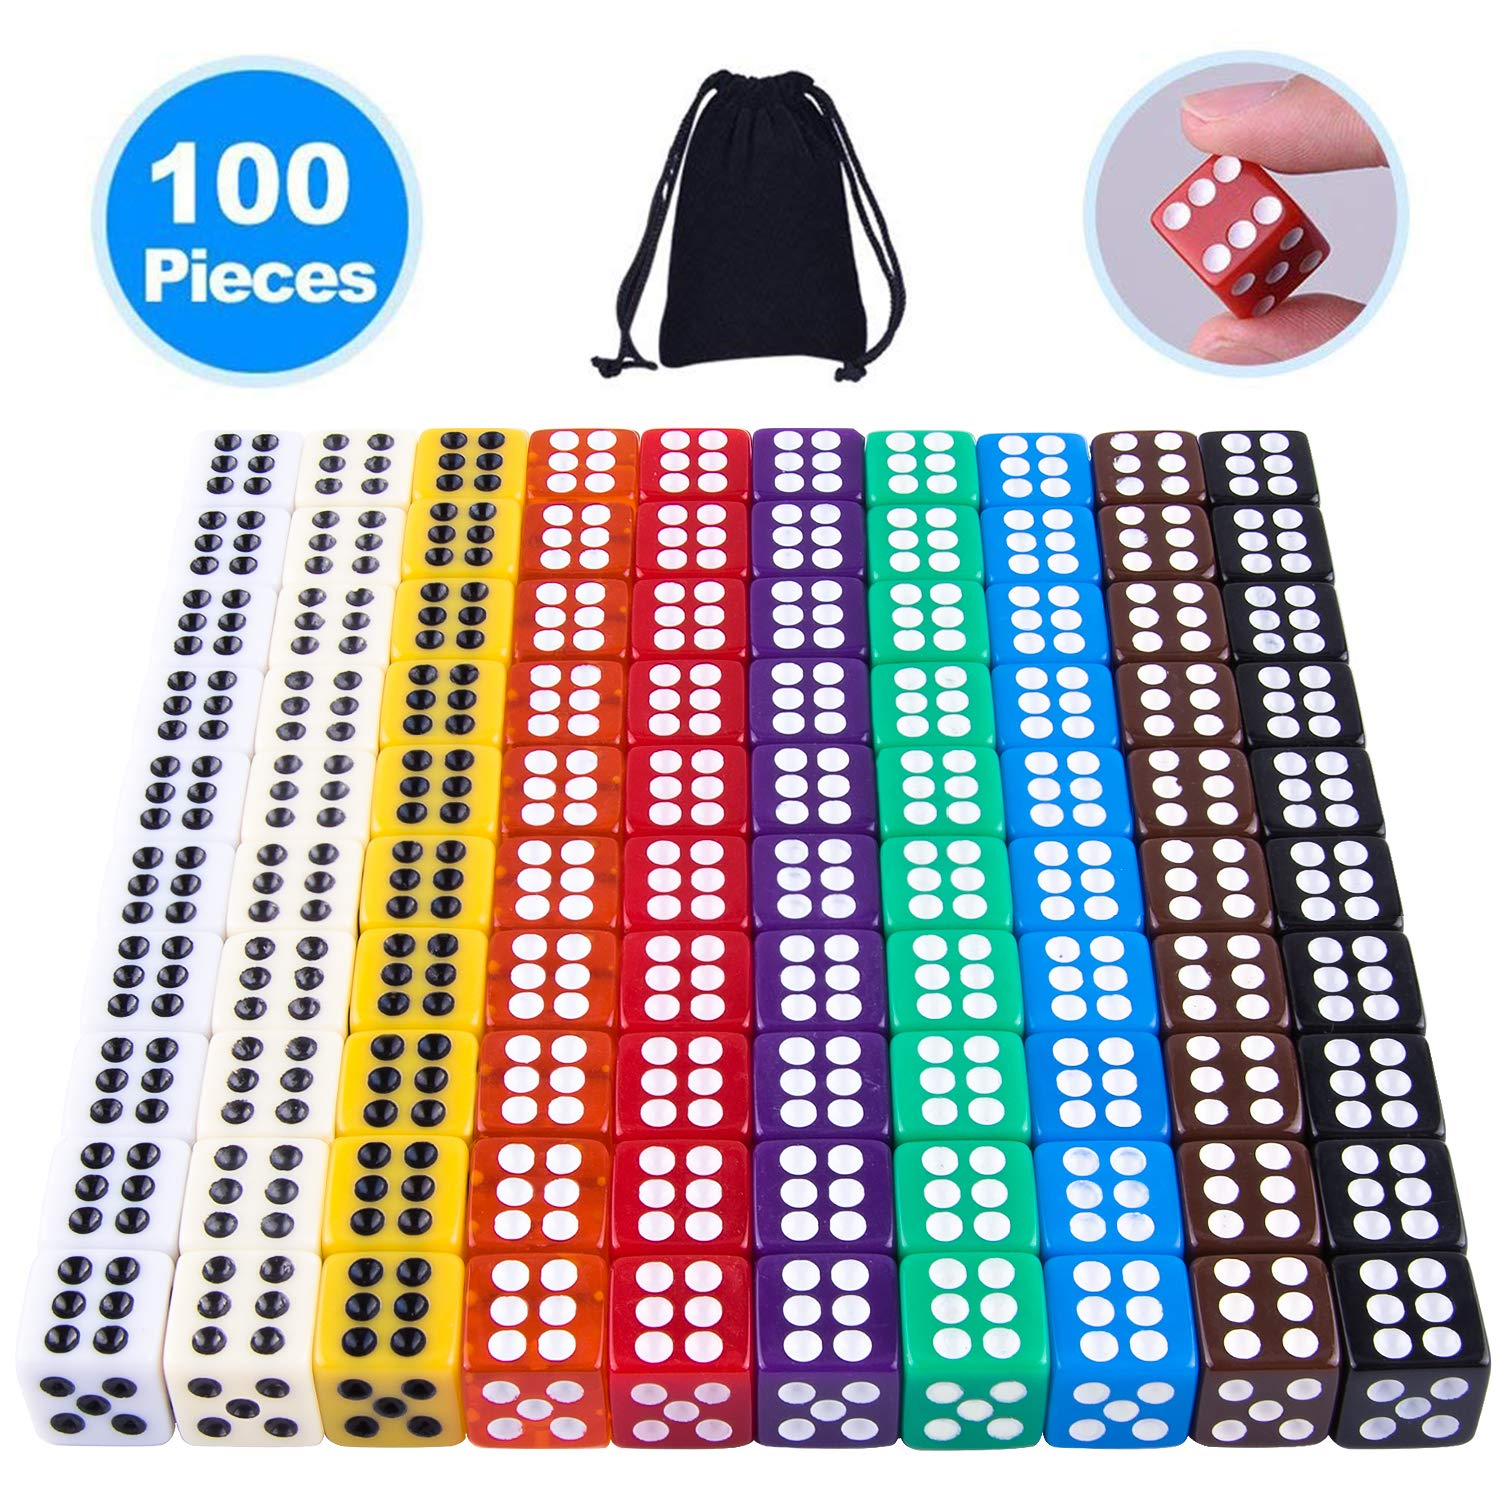 AUSTOR 100 Pieces 6 Sided Game Dice Set 12mm Square Corner Dice with a Free Pouch by AUSTOR